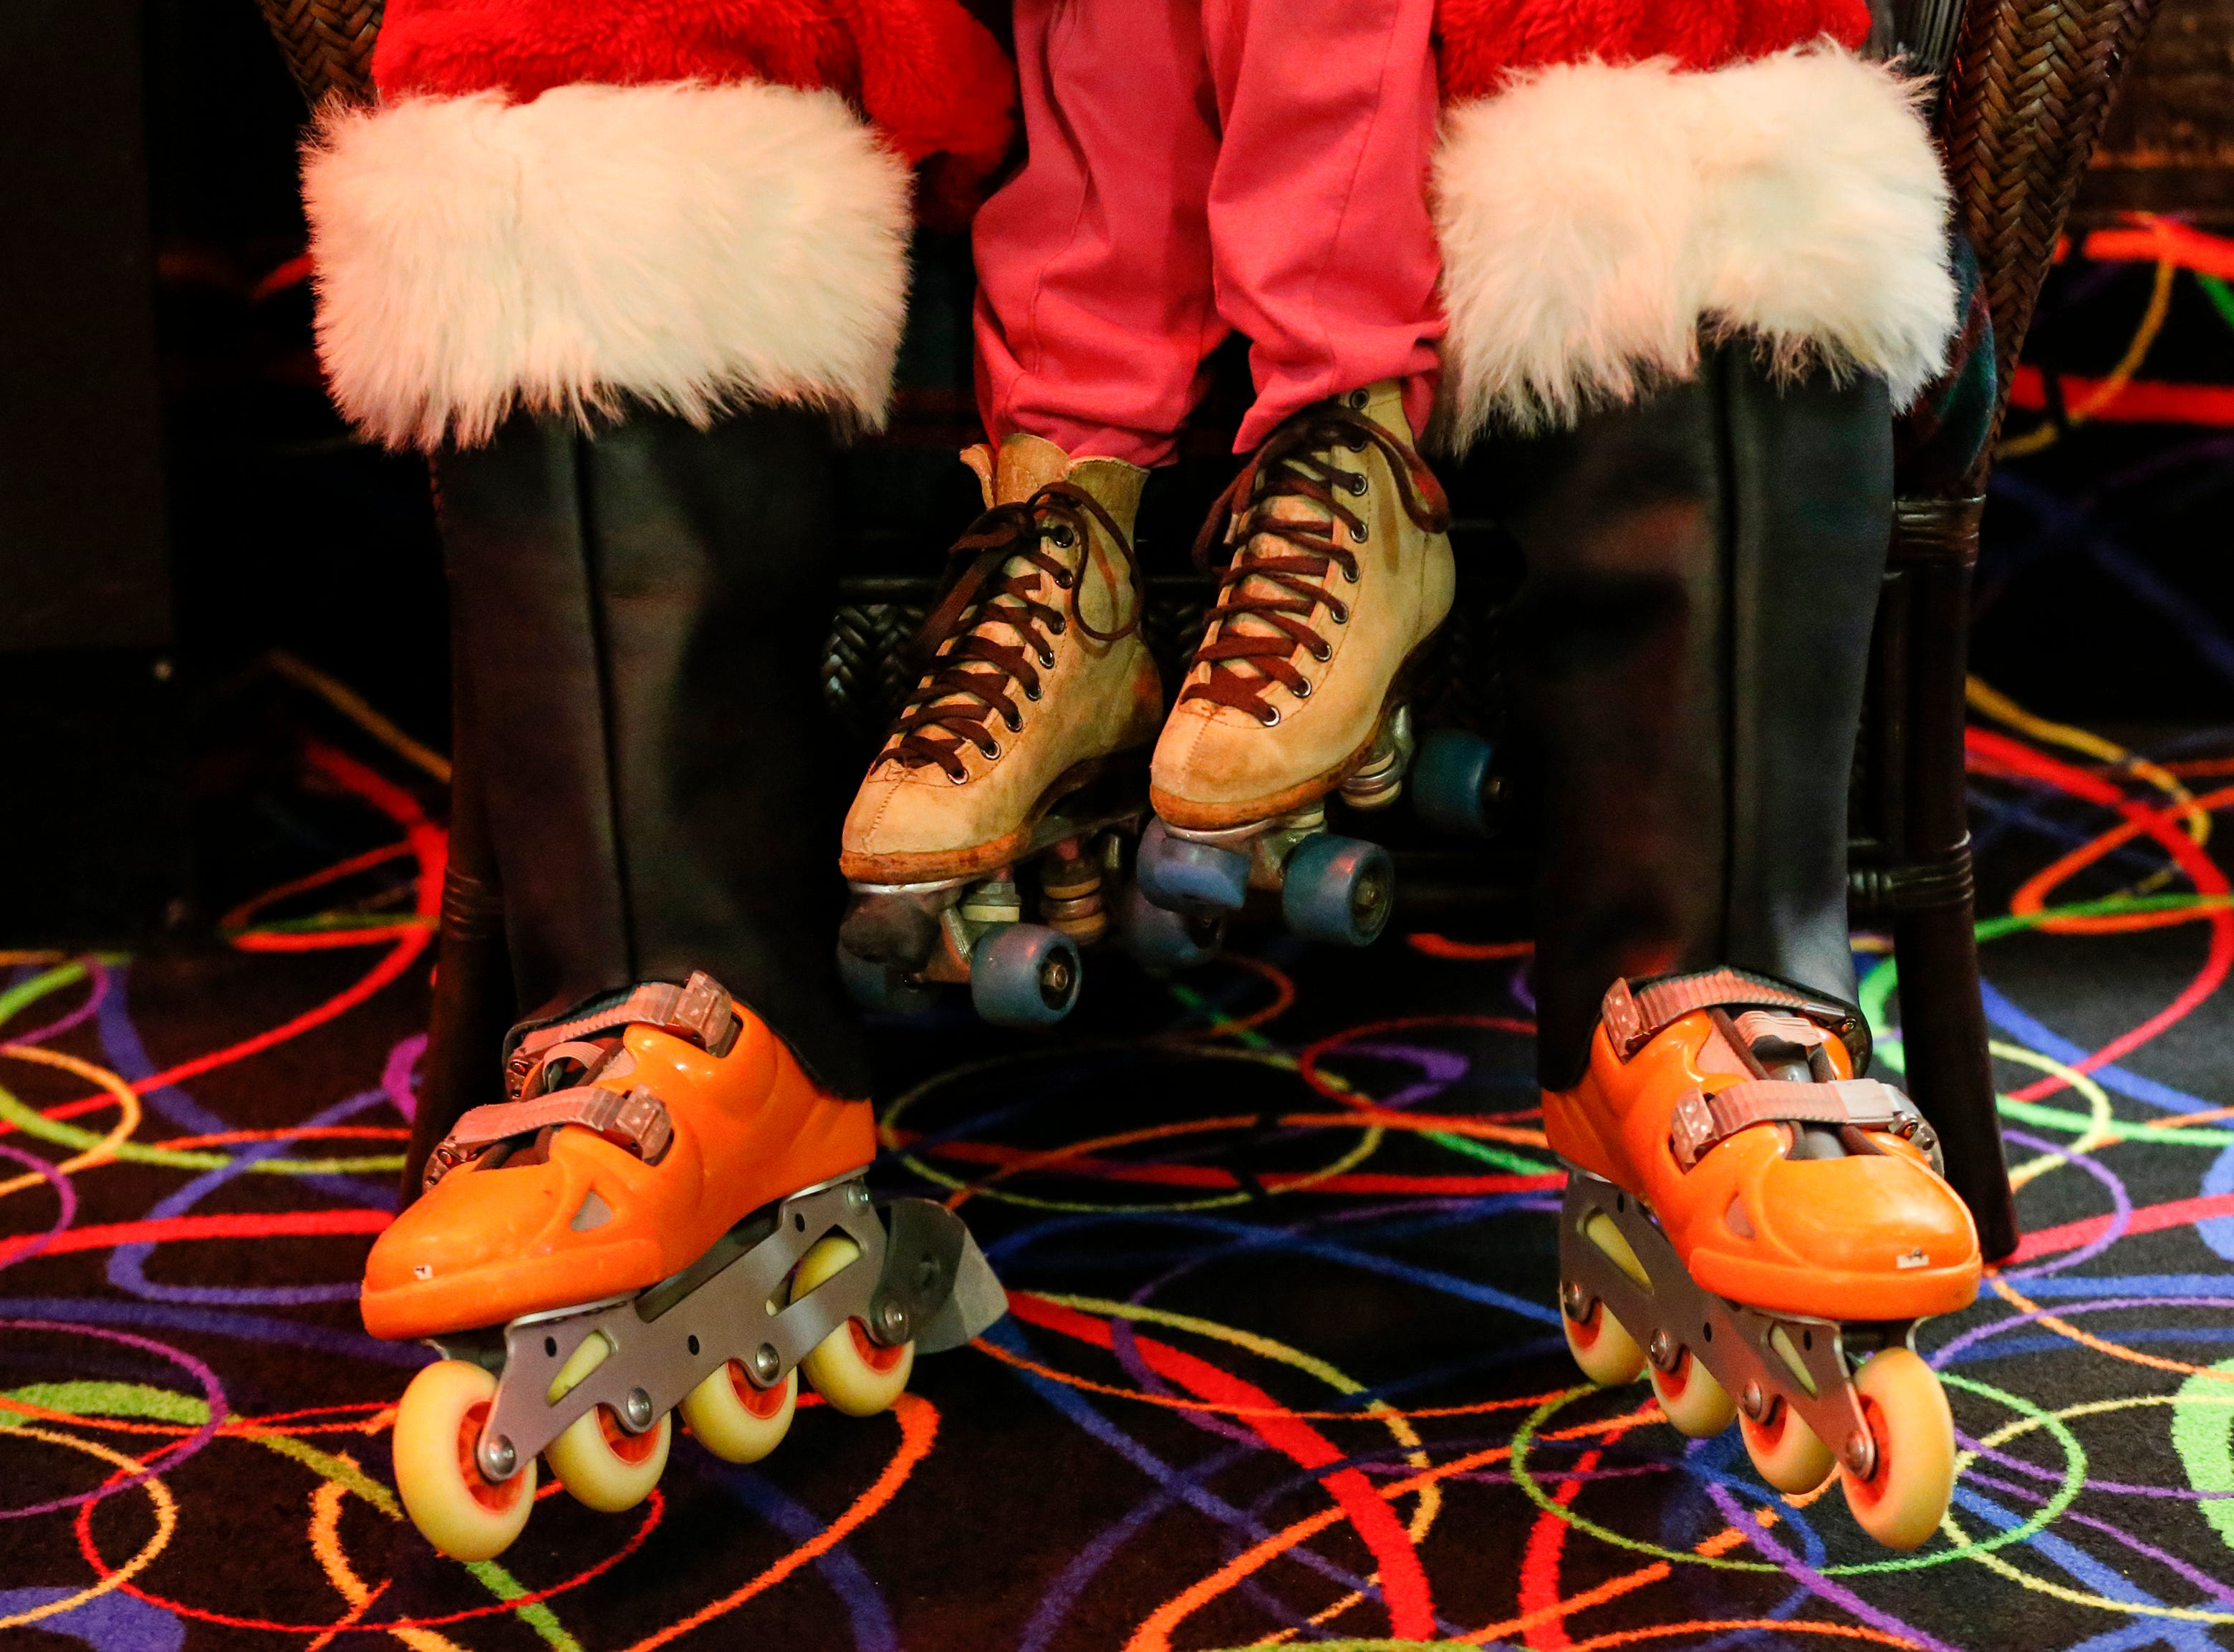 Santa sports orange inline skates as children take turns visiting with him during Santa Skate at Rollaire Skate Center Saturday, December 15, 2018, in Manitowoc, Wis. Joshua Clark/USA TODAY NETWORK-Wisconsin